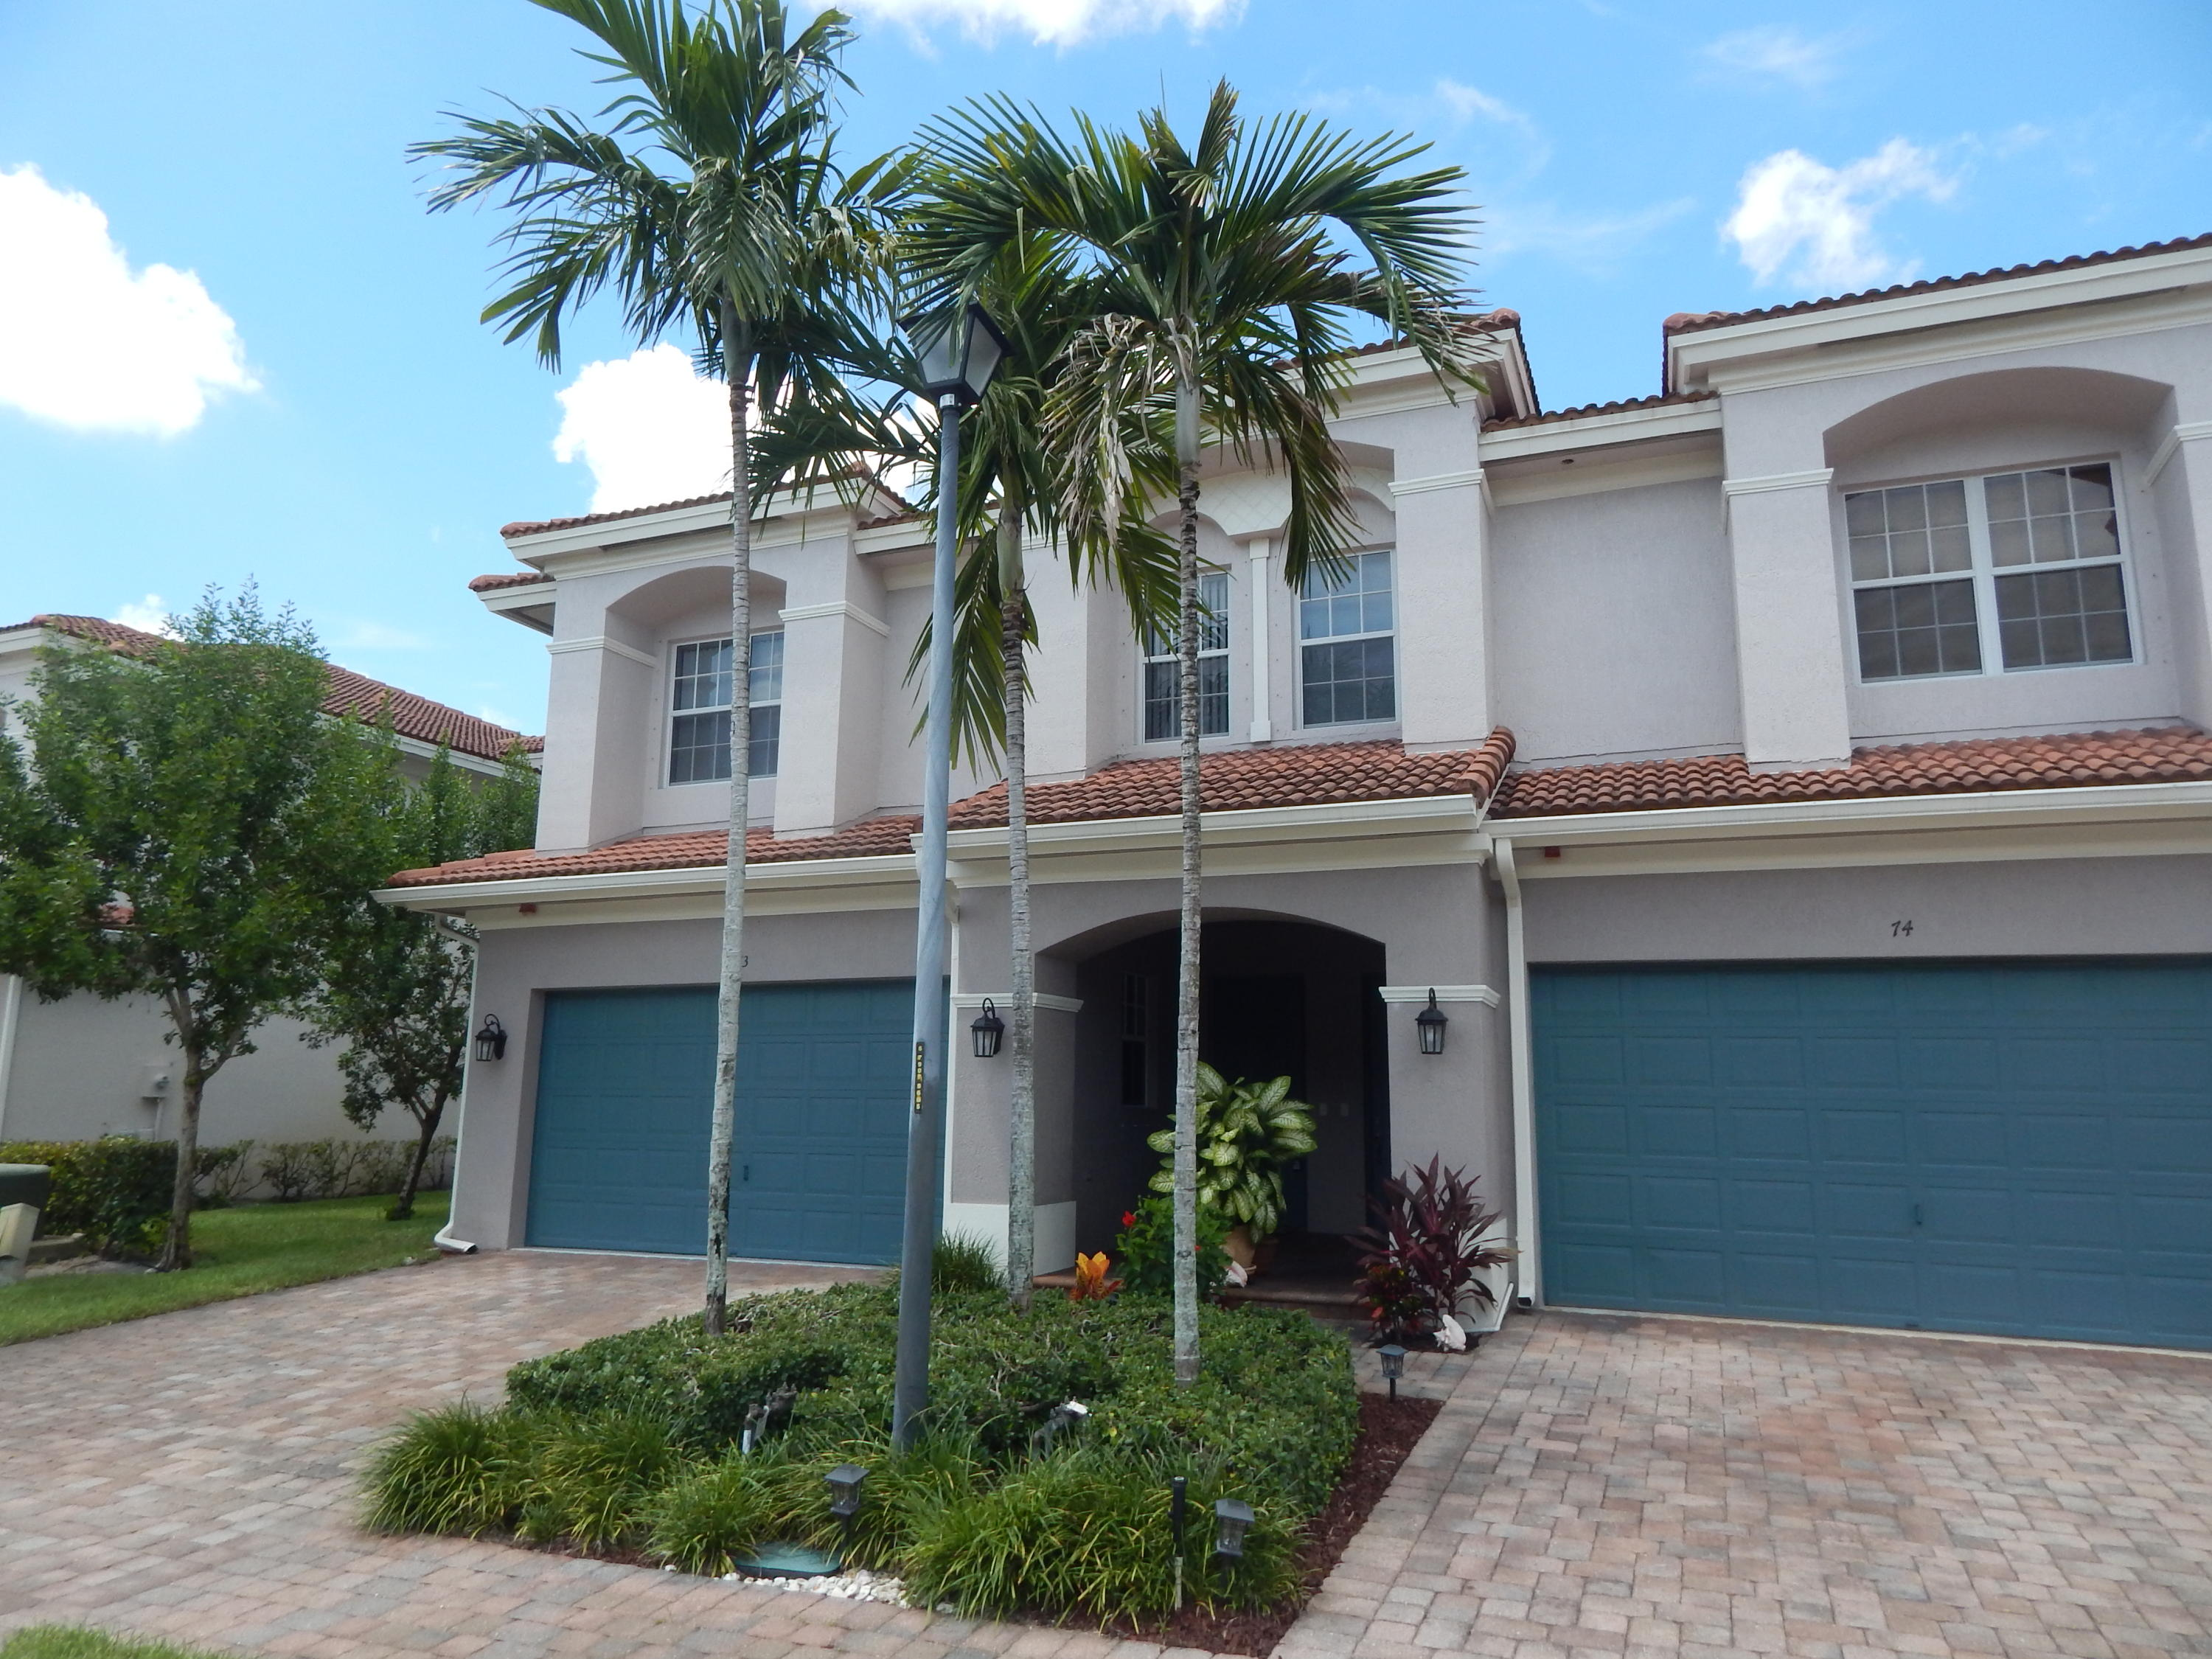 Photo of 73 Landau Street, Boynton Beach, FL 33426